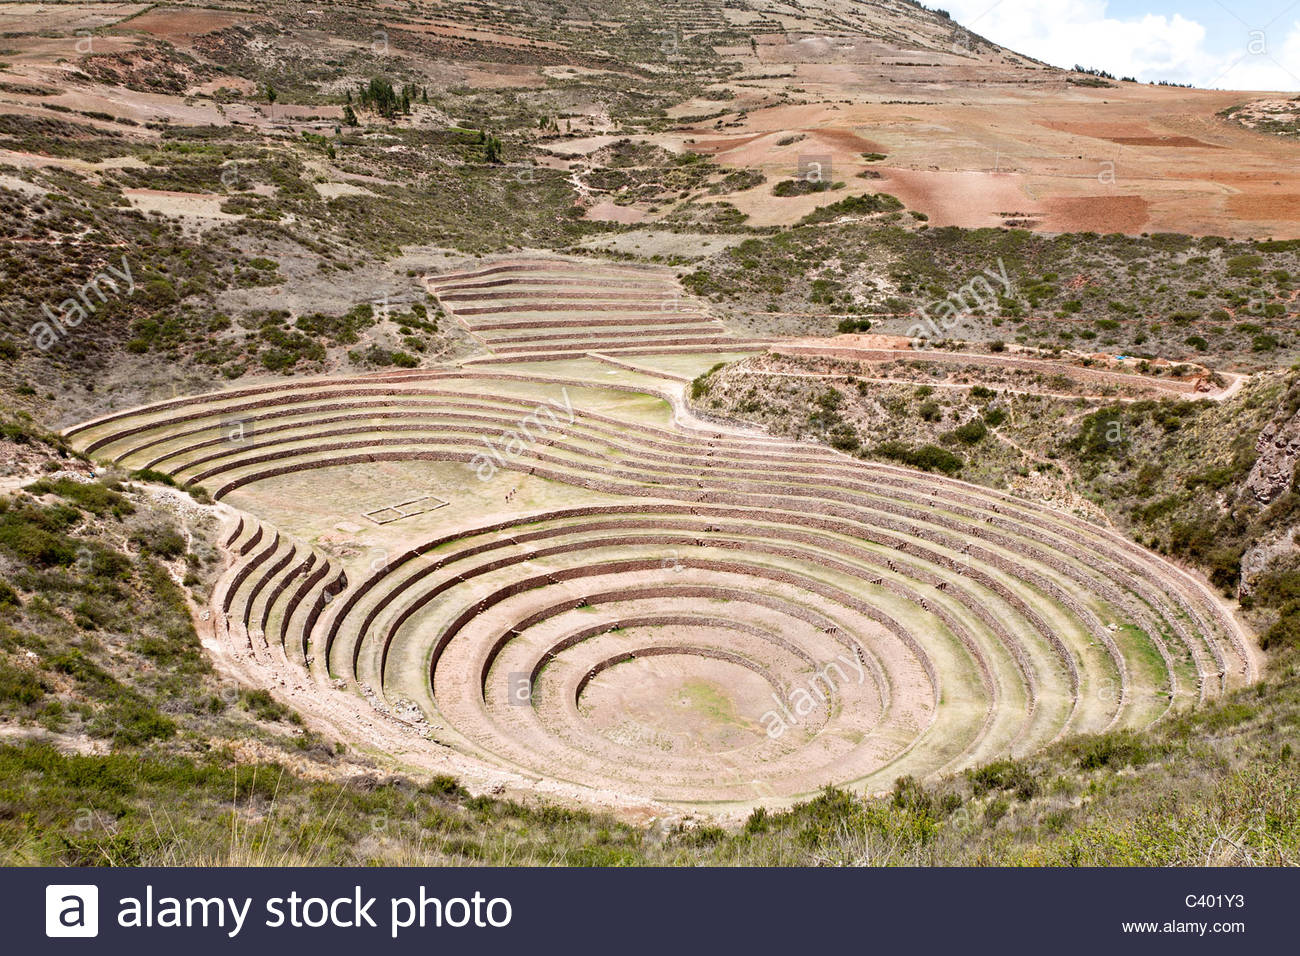 Inca agricultural terraces at Moray, near Ollantaytambo, Sacred Valley, Peru. - Stock Image